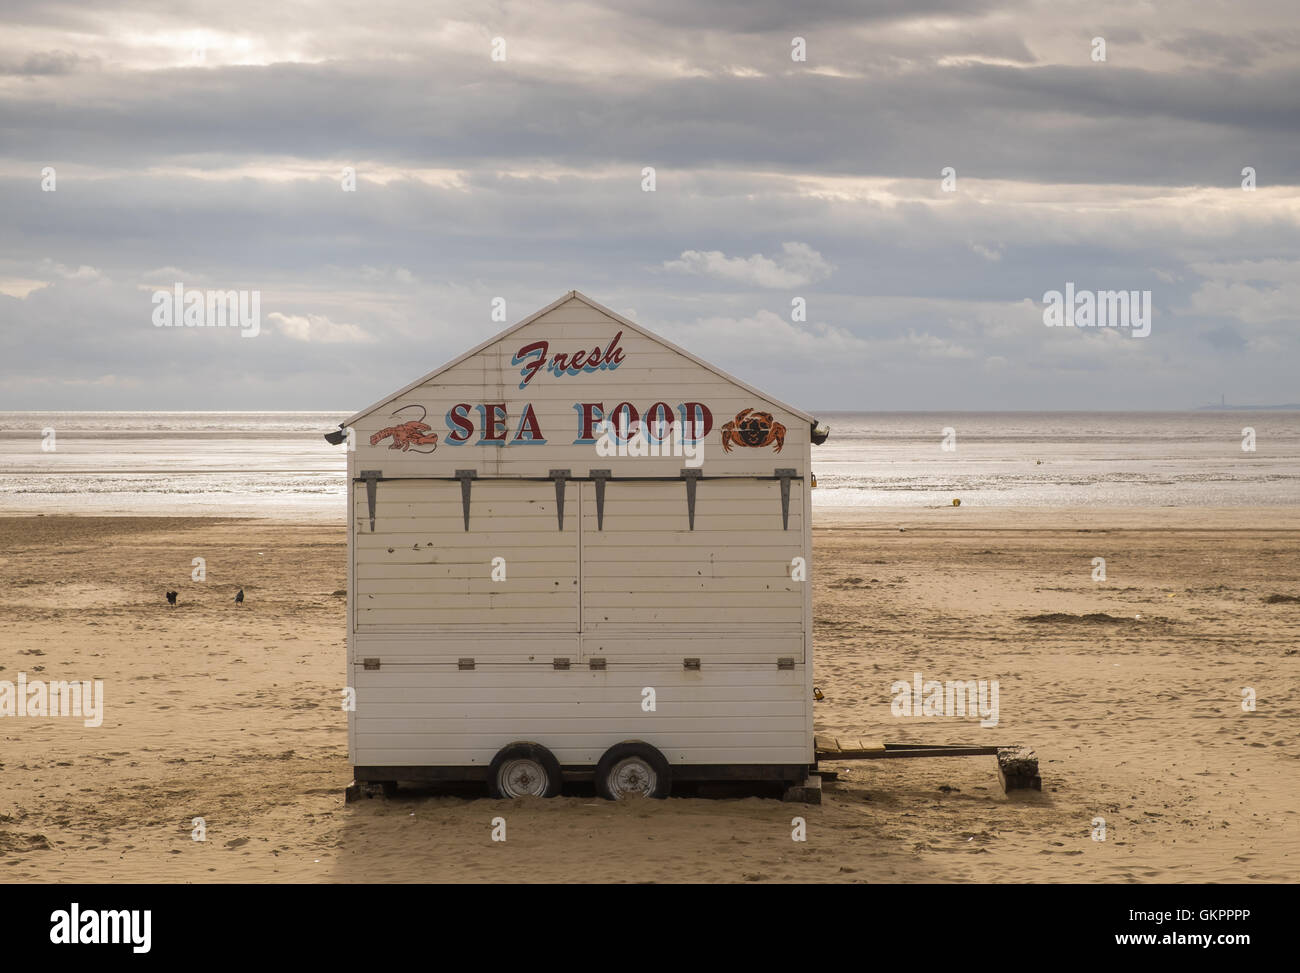 SEafood hut on the beach at Weston-Super-Mare, Somerset, England, on a stormy summer afternoon - Stock Image